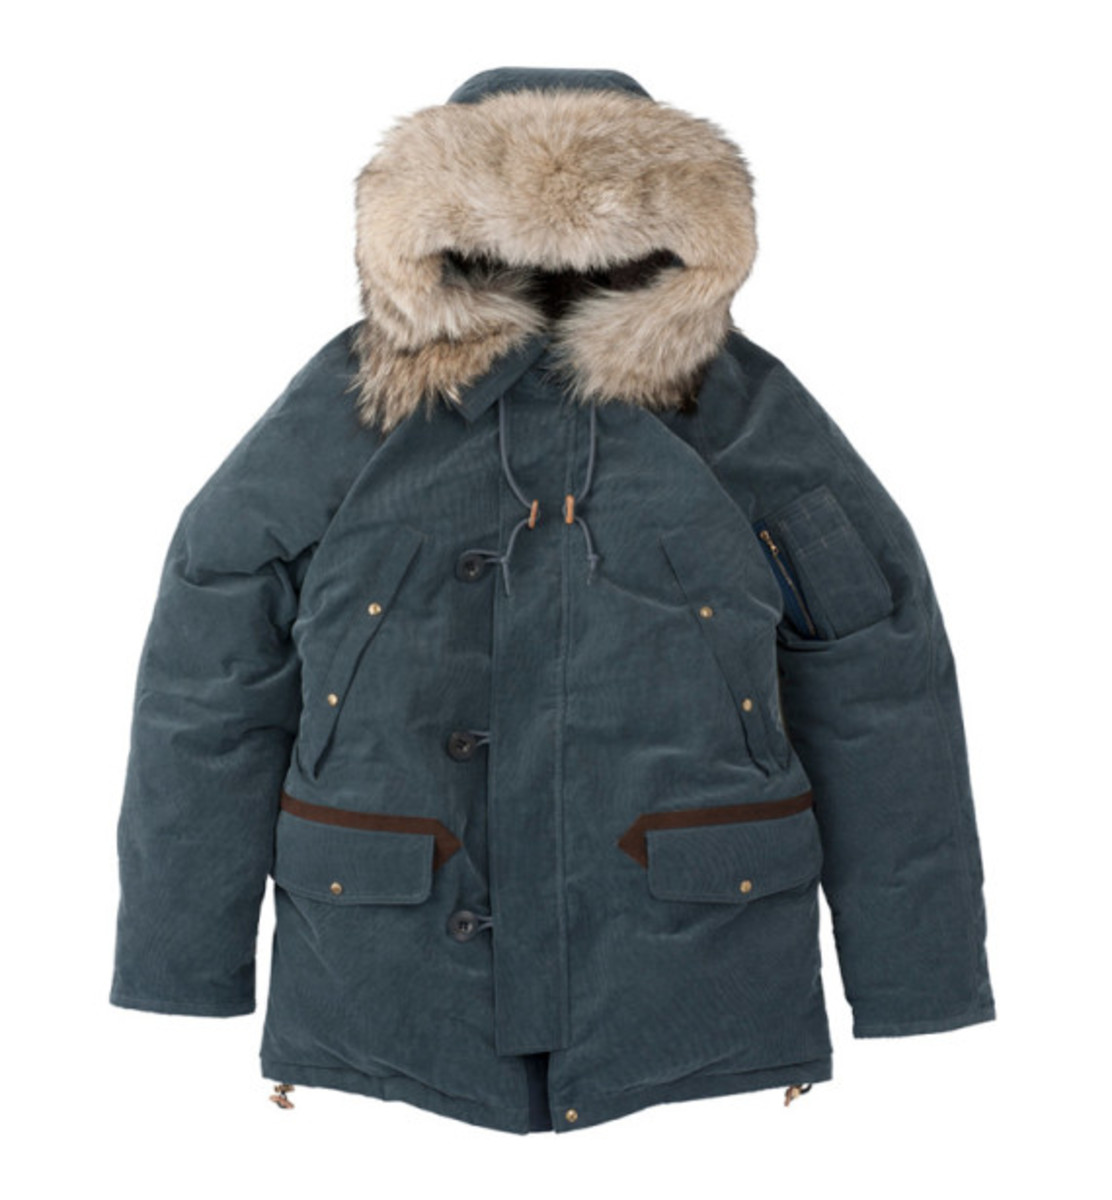 visvim-valdez-down-jacket-2l-04